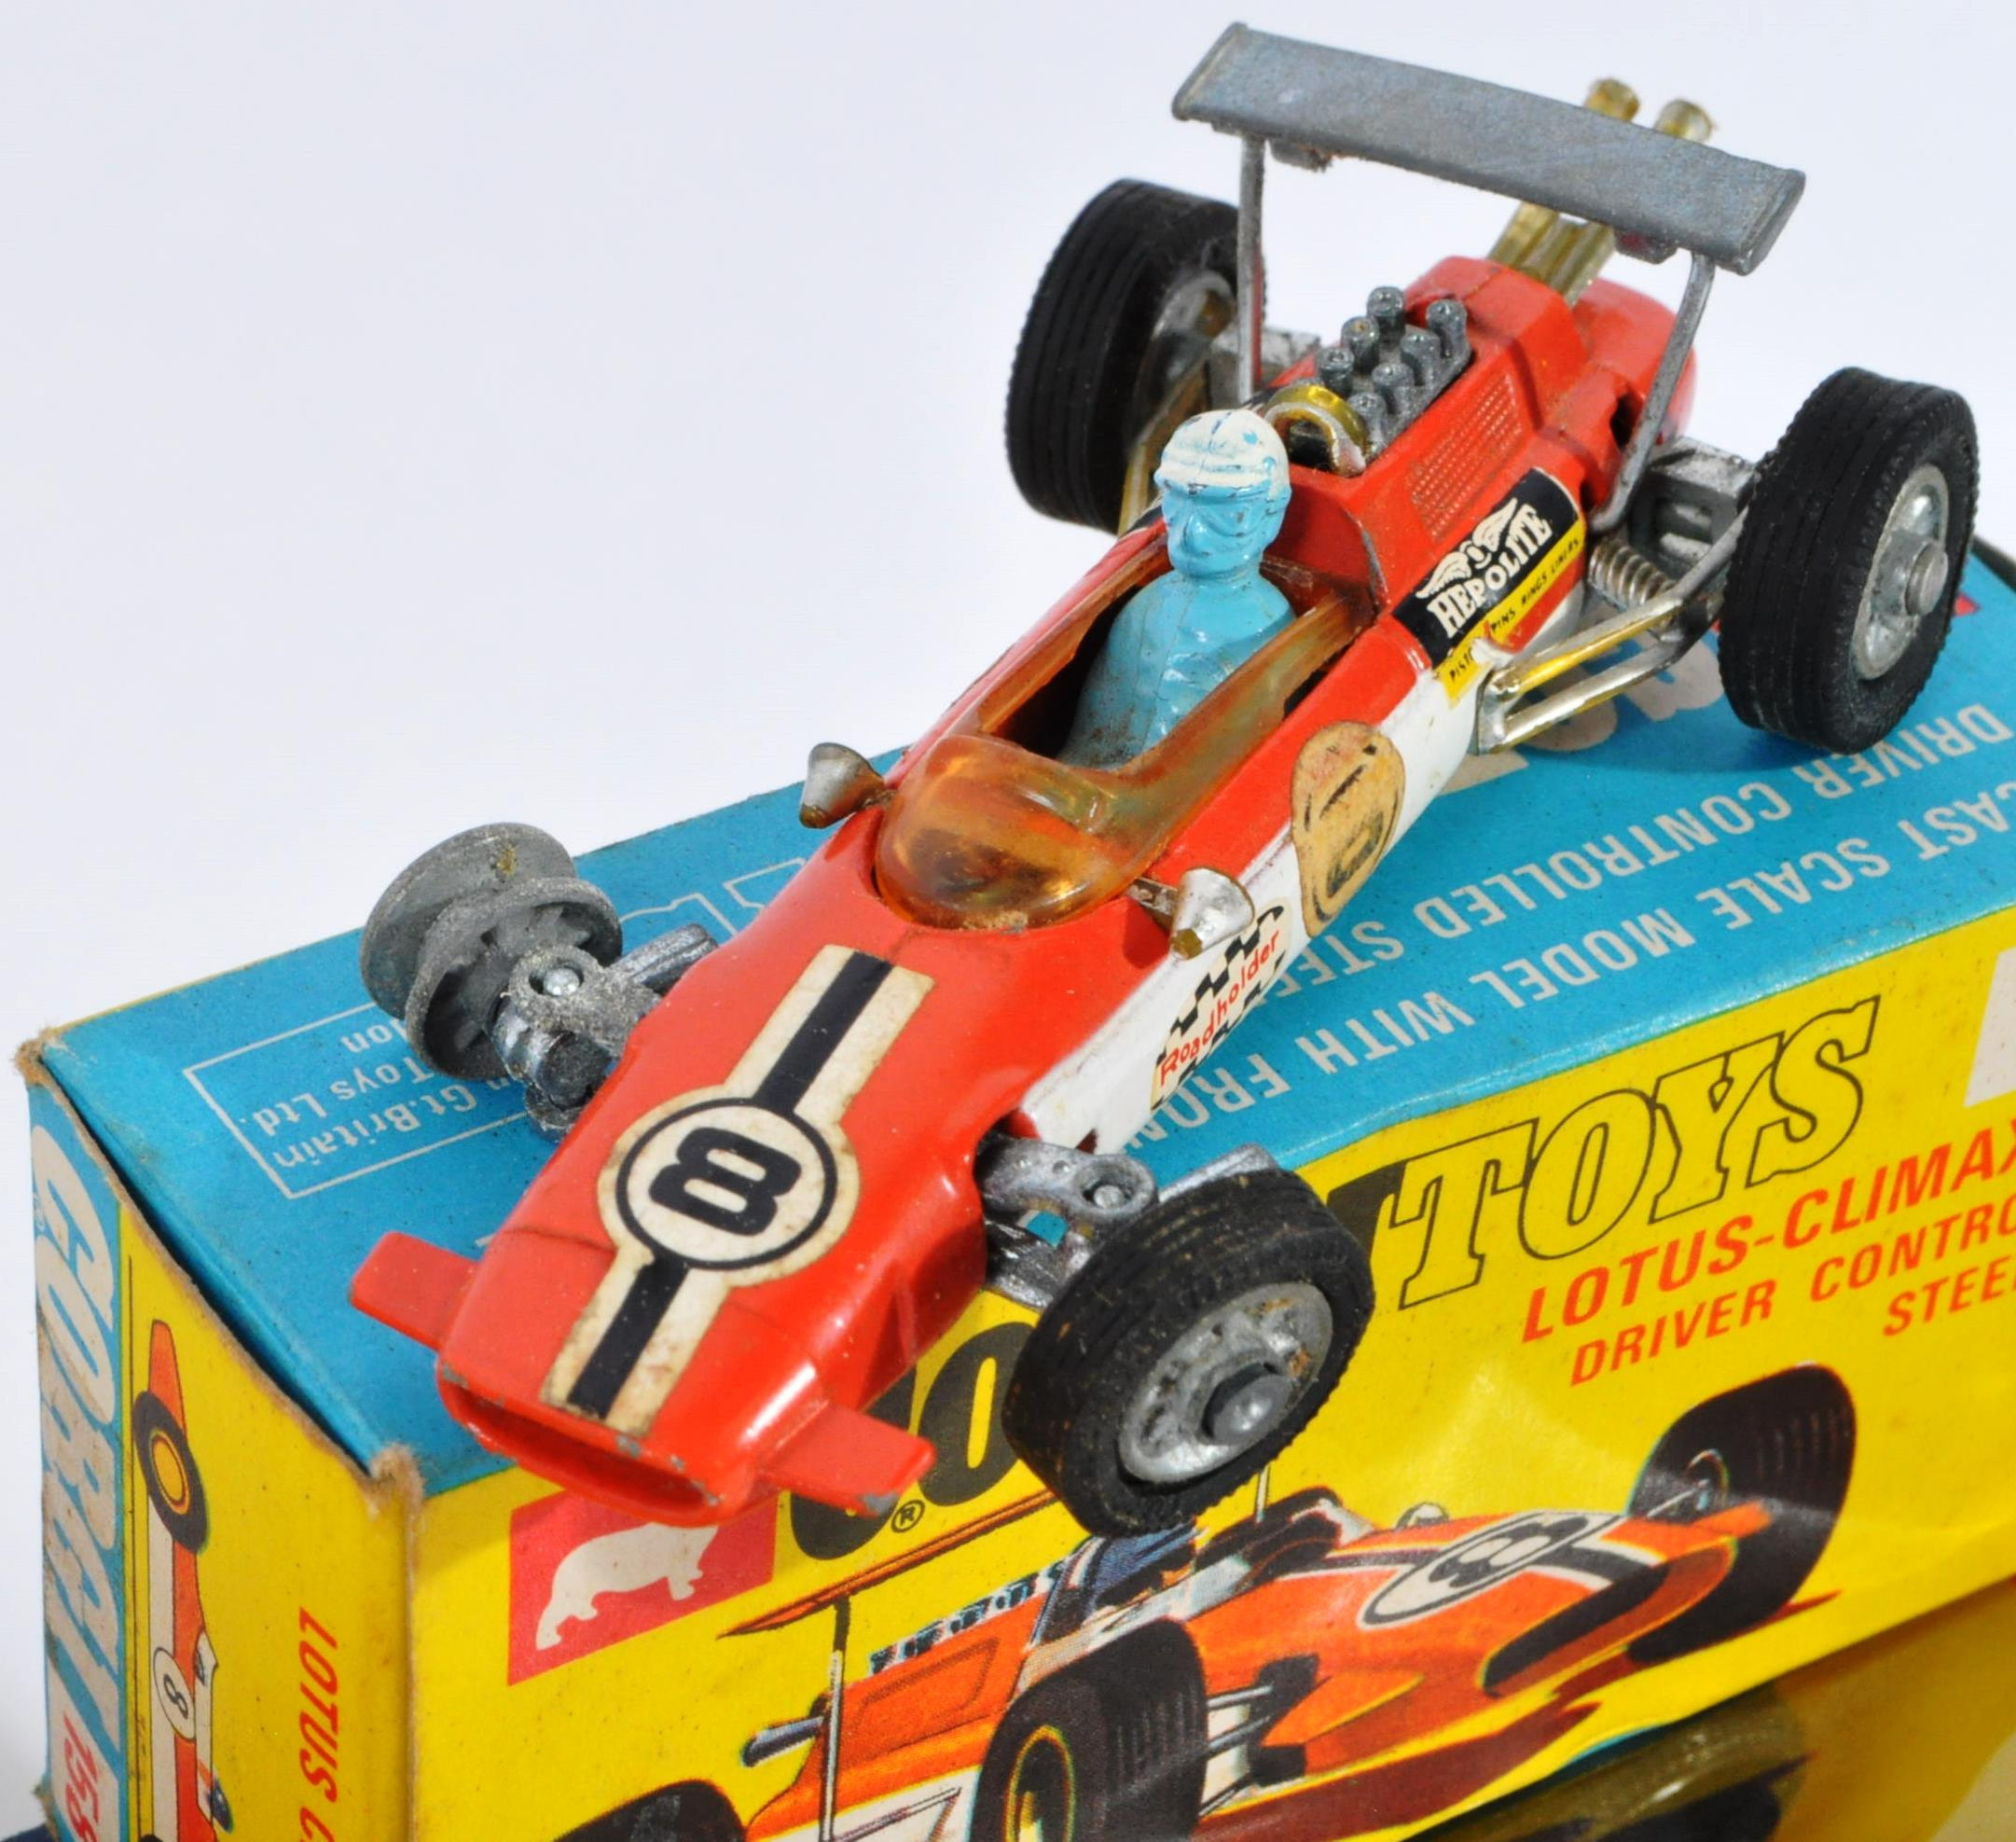 COLLECTION OF ASSORTED VINTAGE CORGI MADE DIECAST MODELS - Image 5 of 6